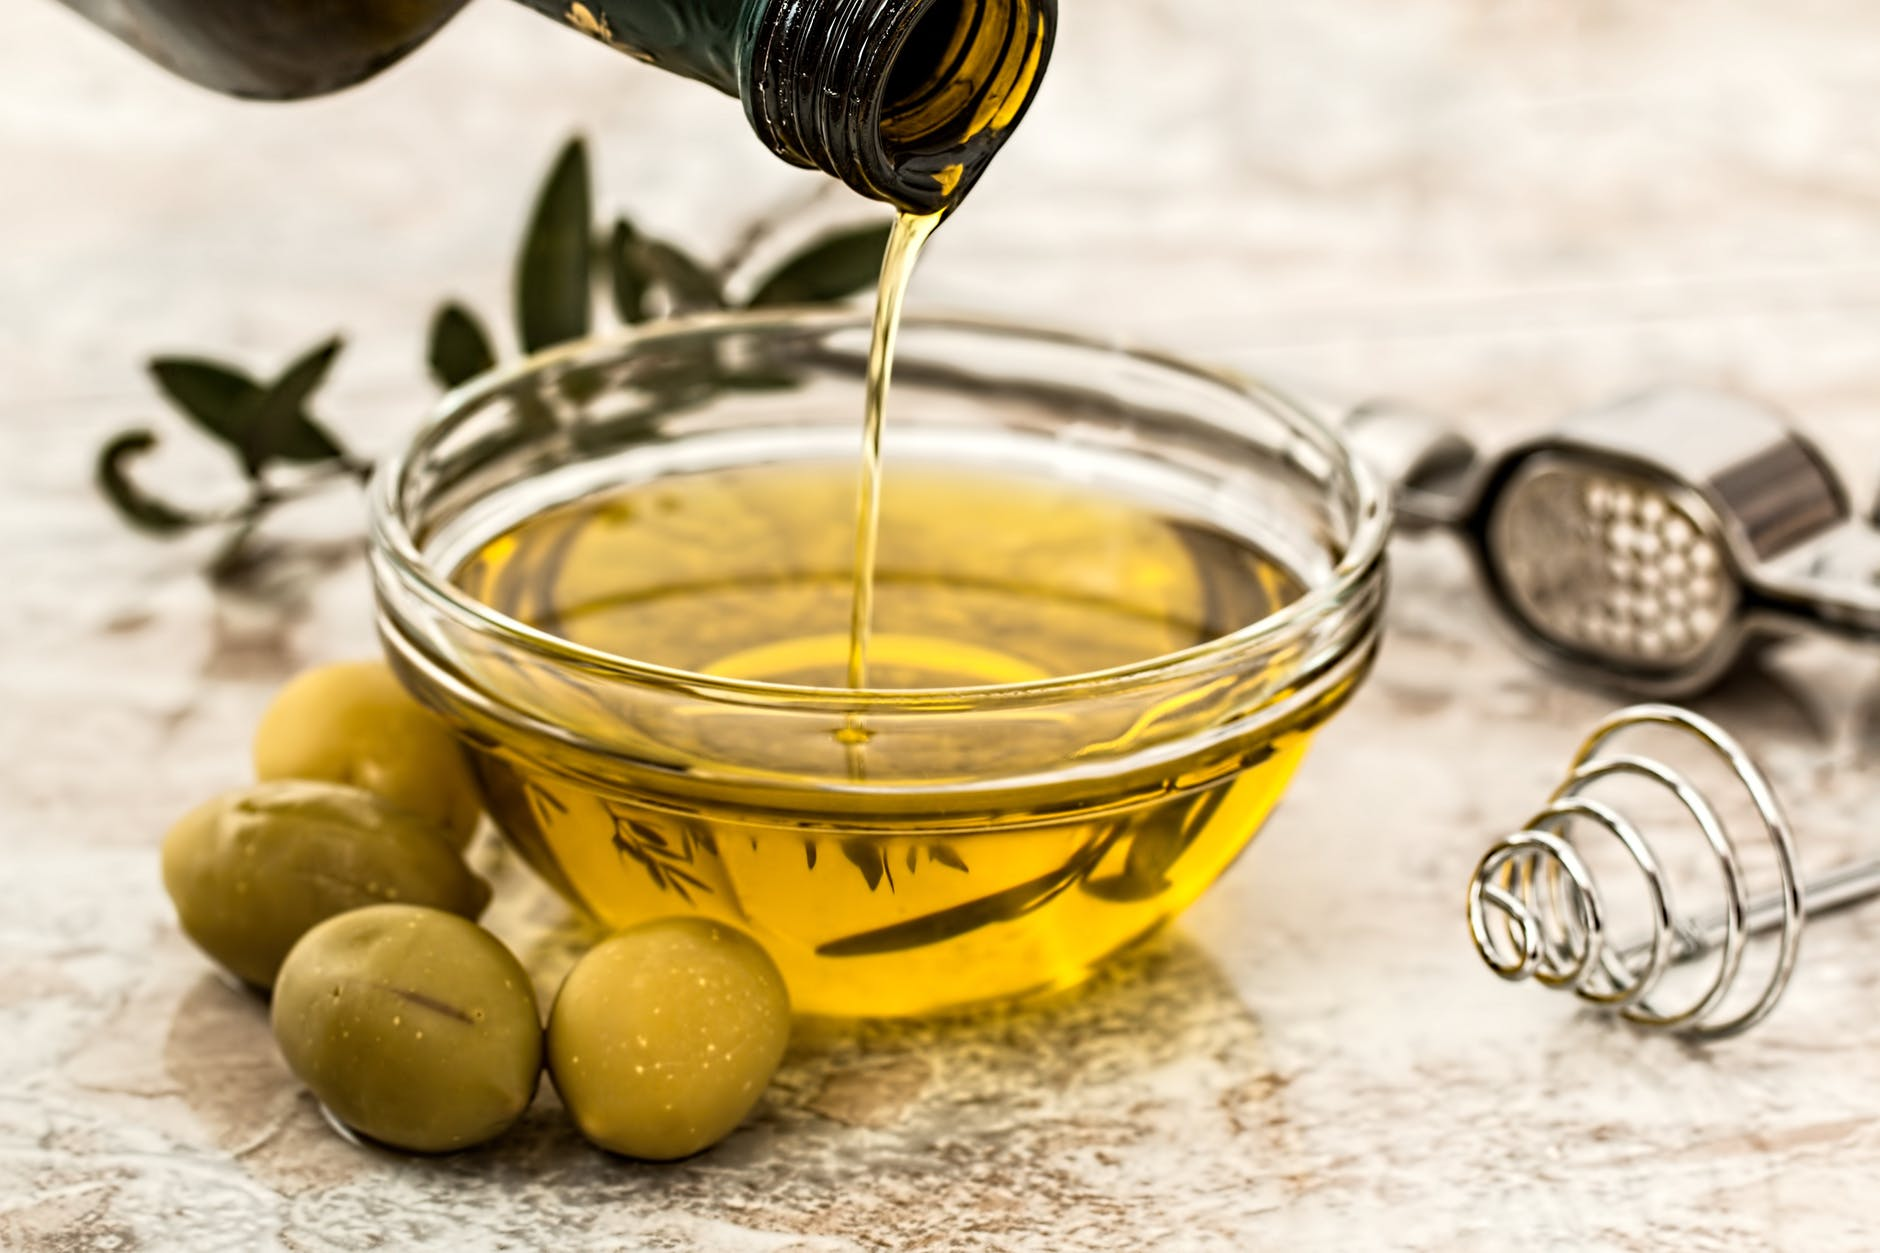 beautiful-nails-tips-olive-oil-massaging-natural-nail-care